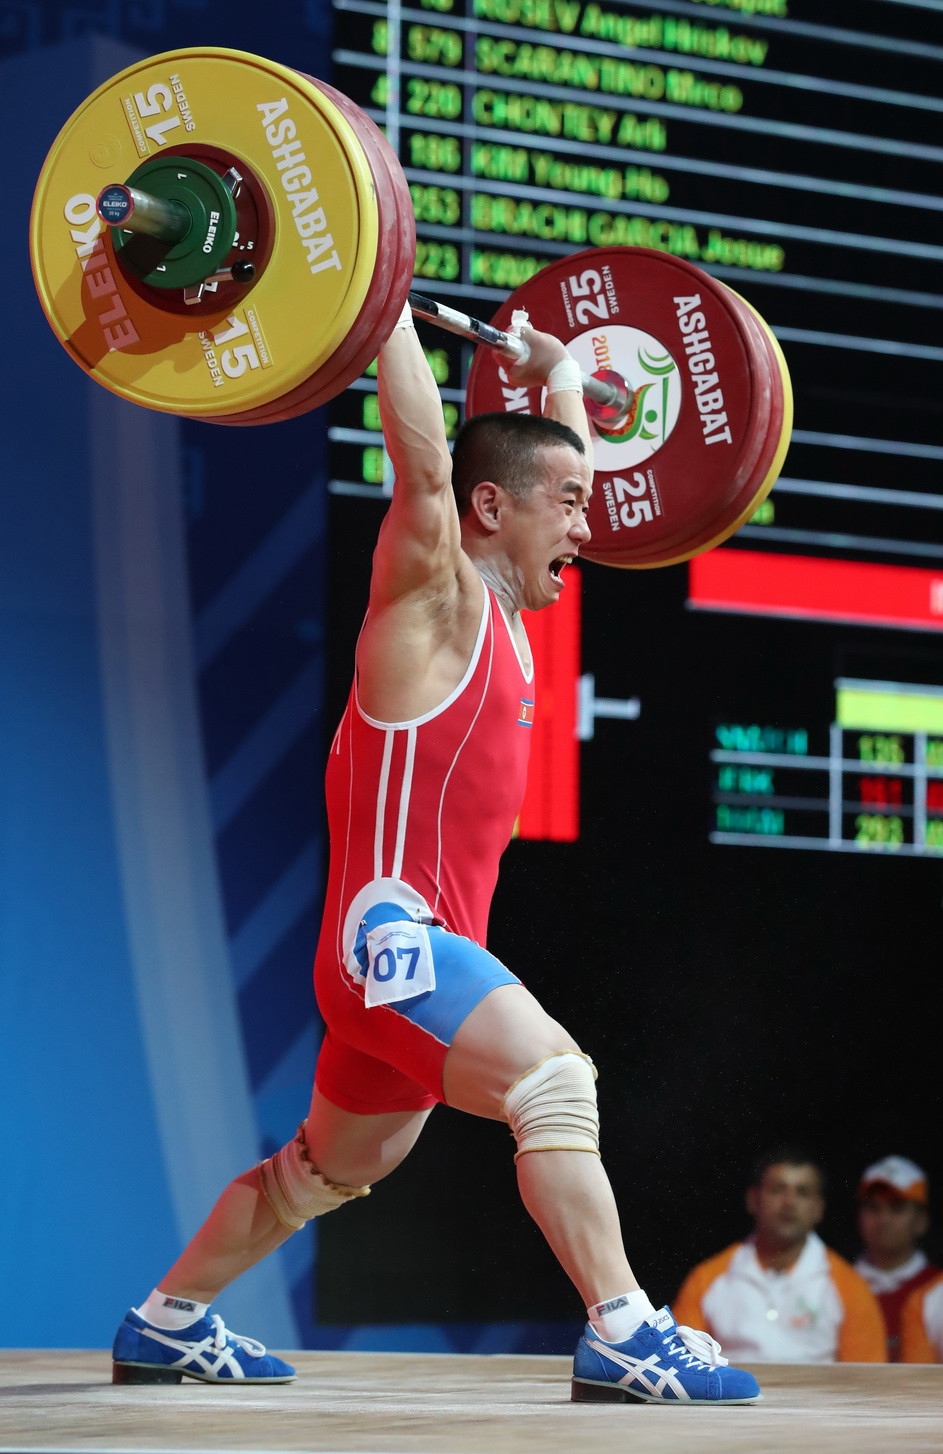 Om breaks clean and jerk world standard on way to clinching clean sweep of titles at 2018 IWF World Championships